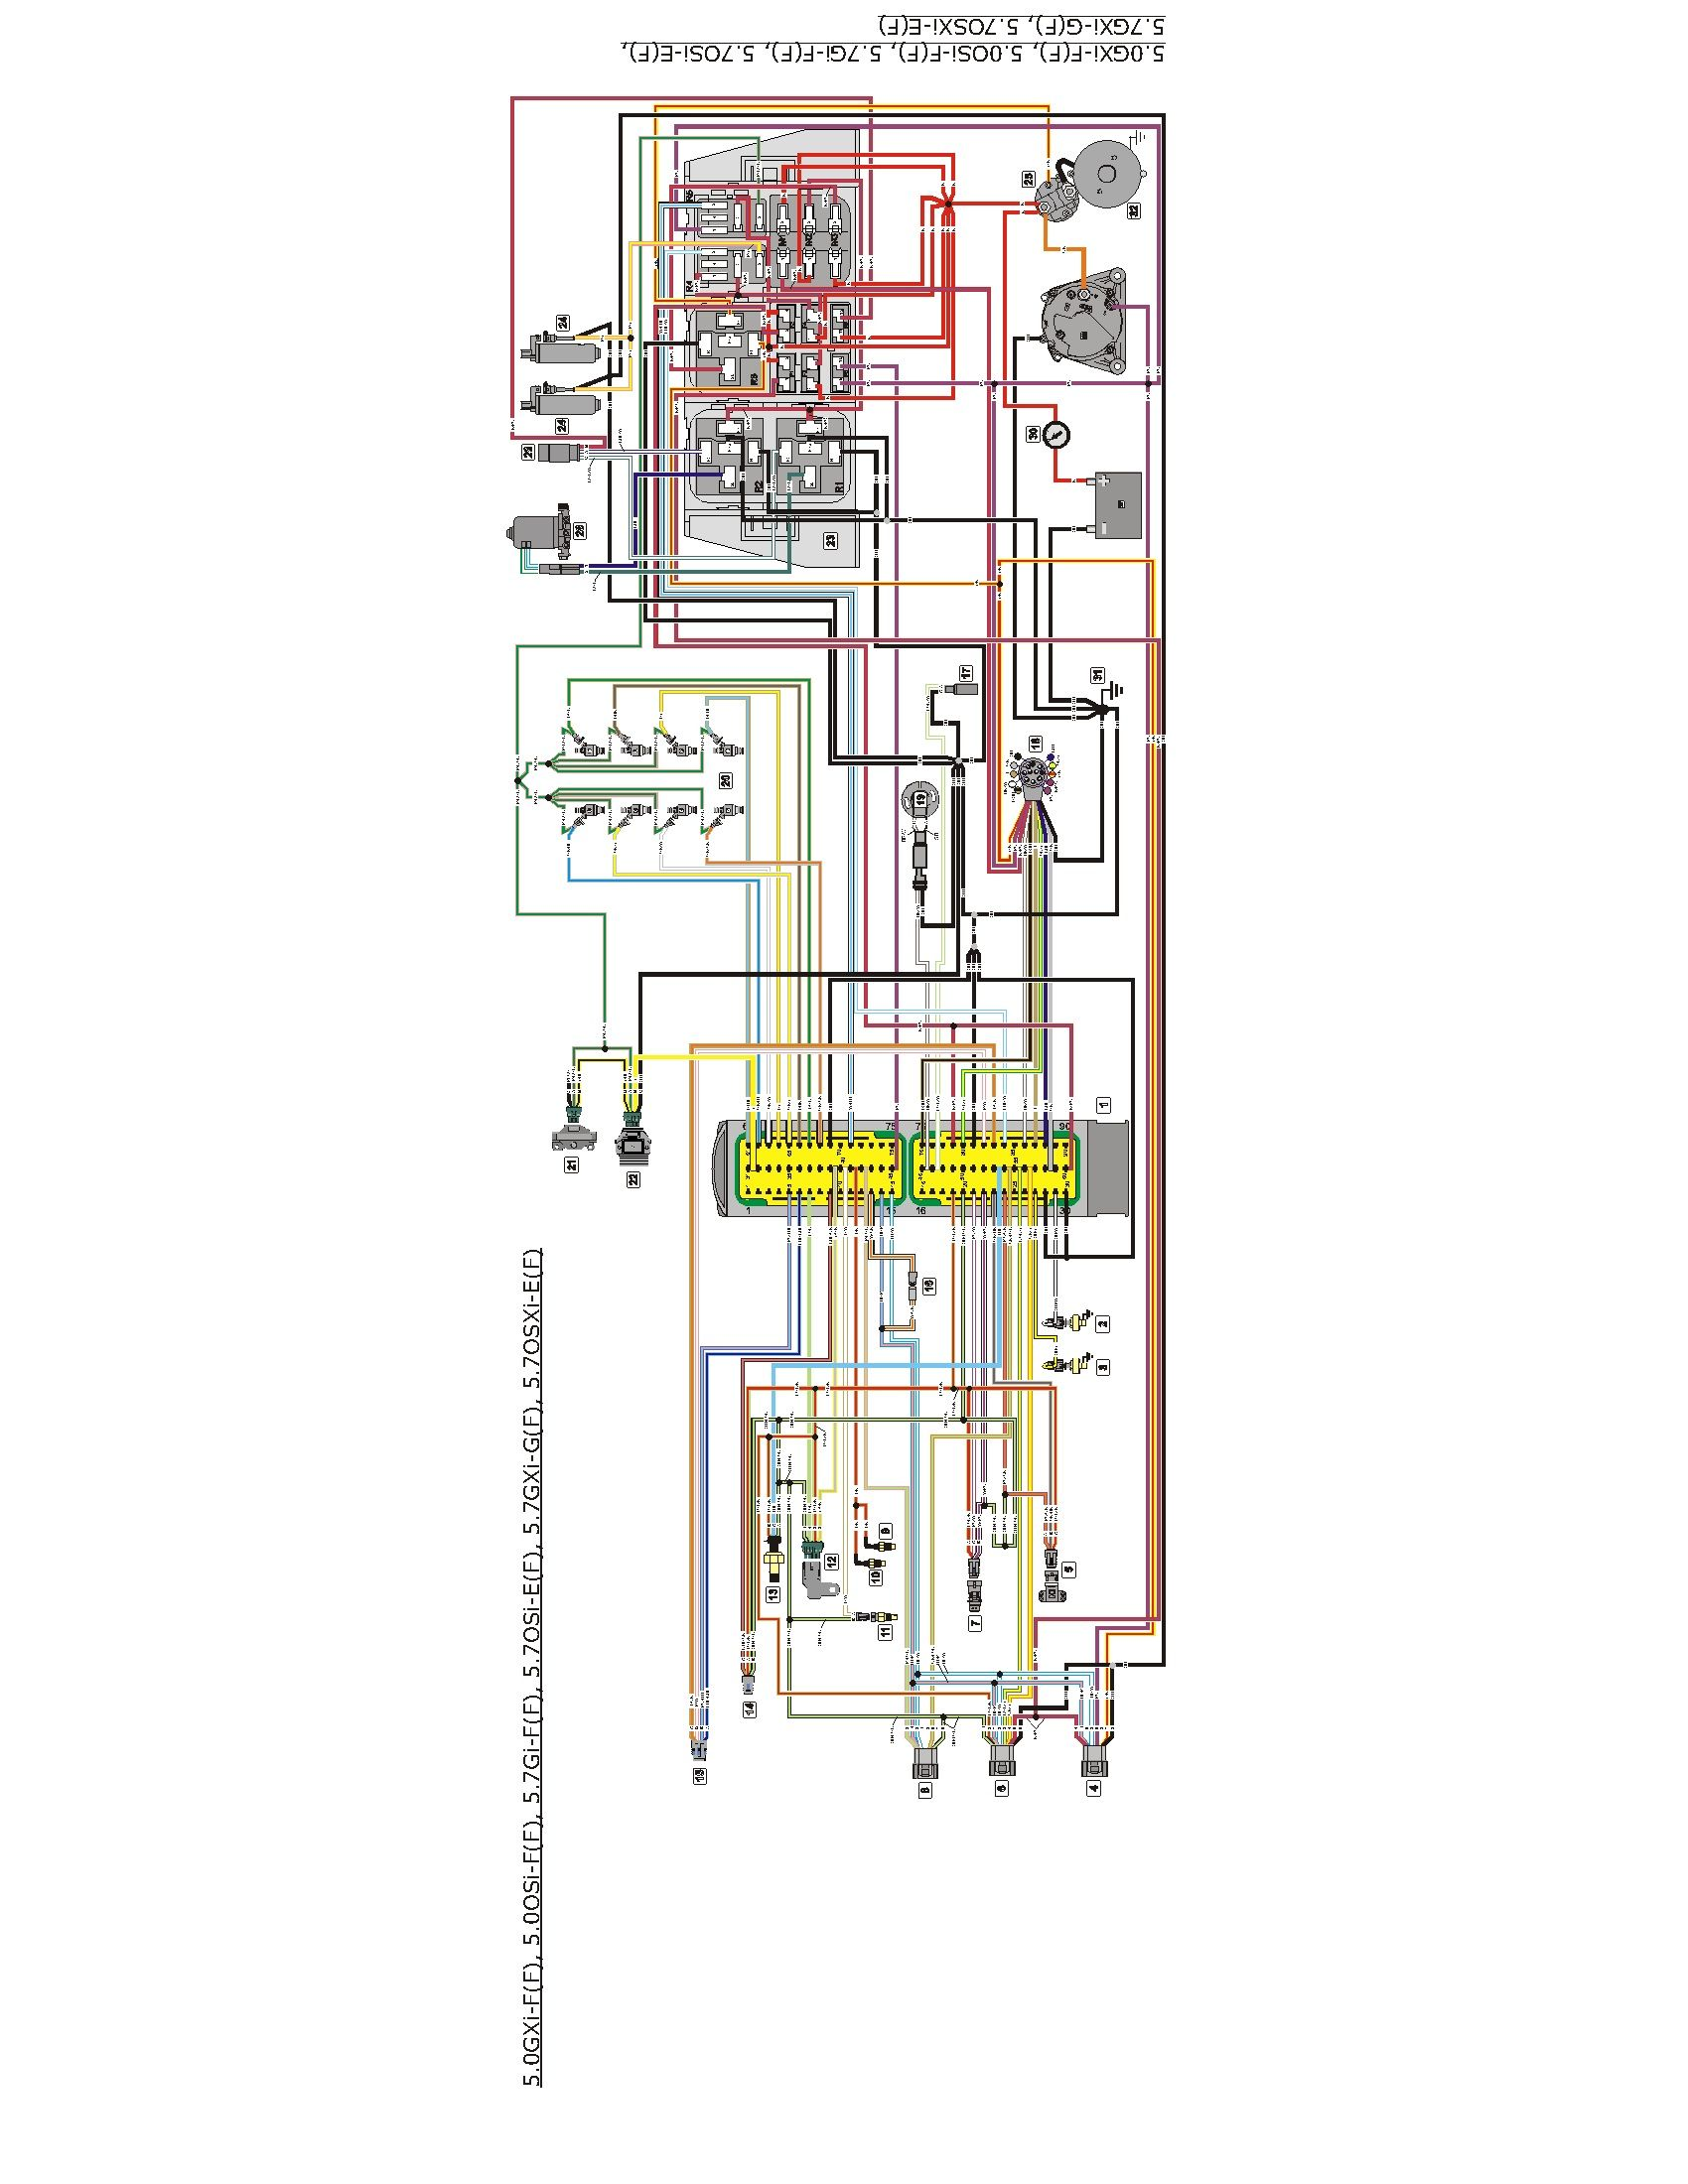 Volvo penta 57 engine wiring diagram boat pinterest volvo and volvo penta 57 engine wiring diagram swarovskicordoba